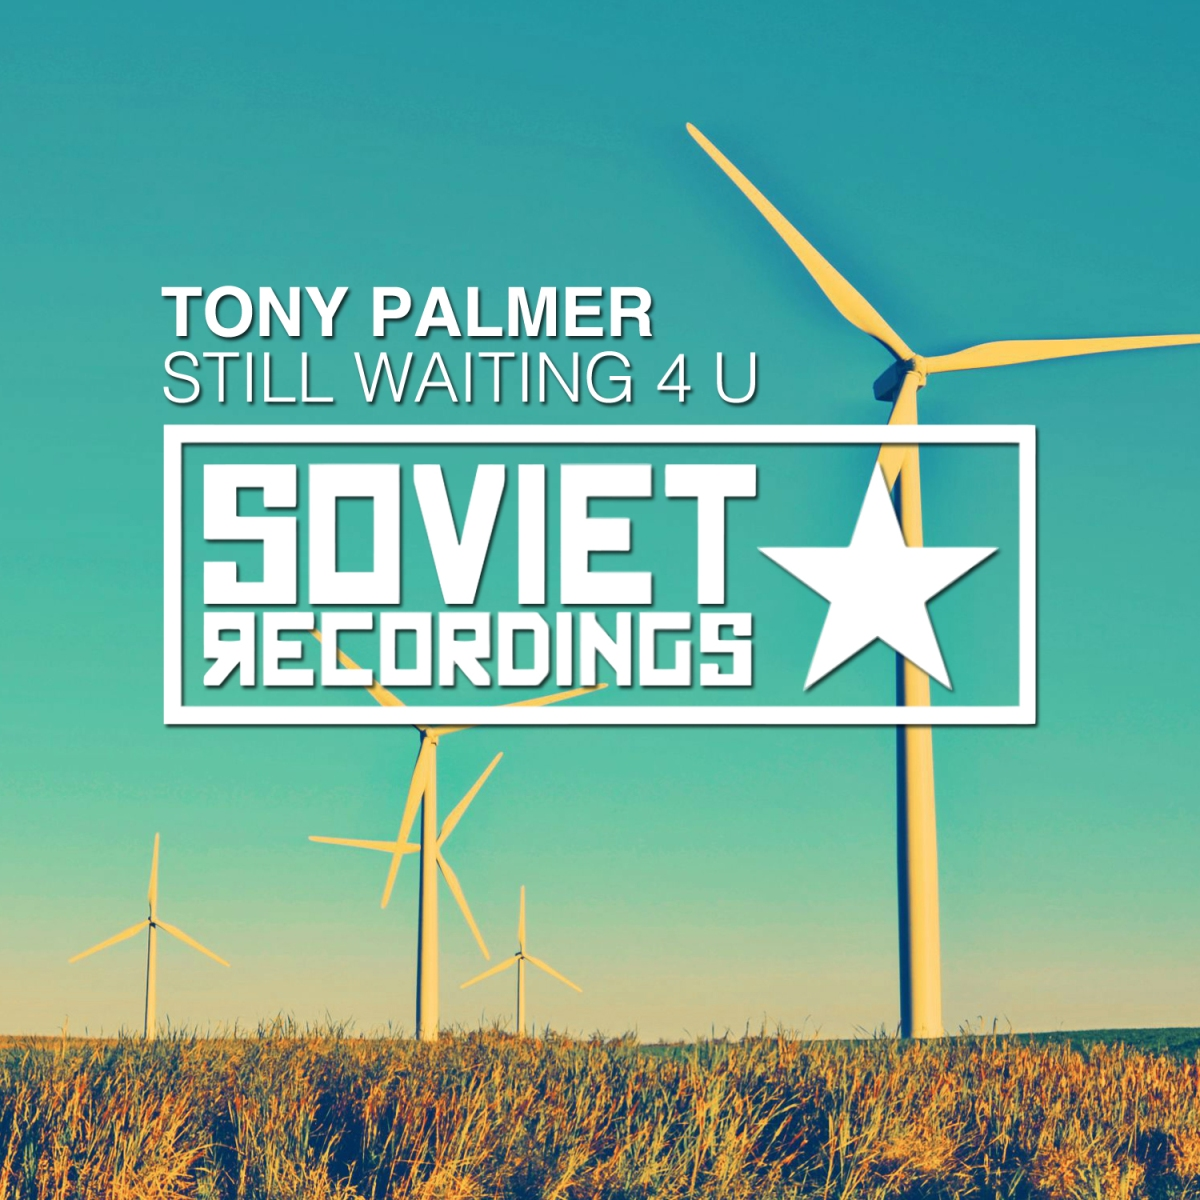 Tony Palmer - Still Waiting 4 U